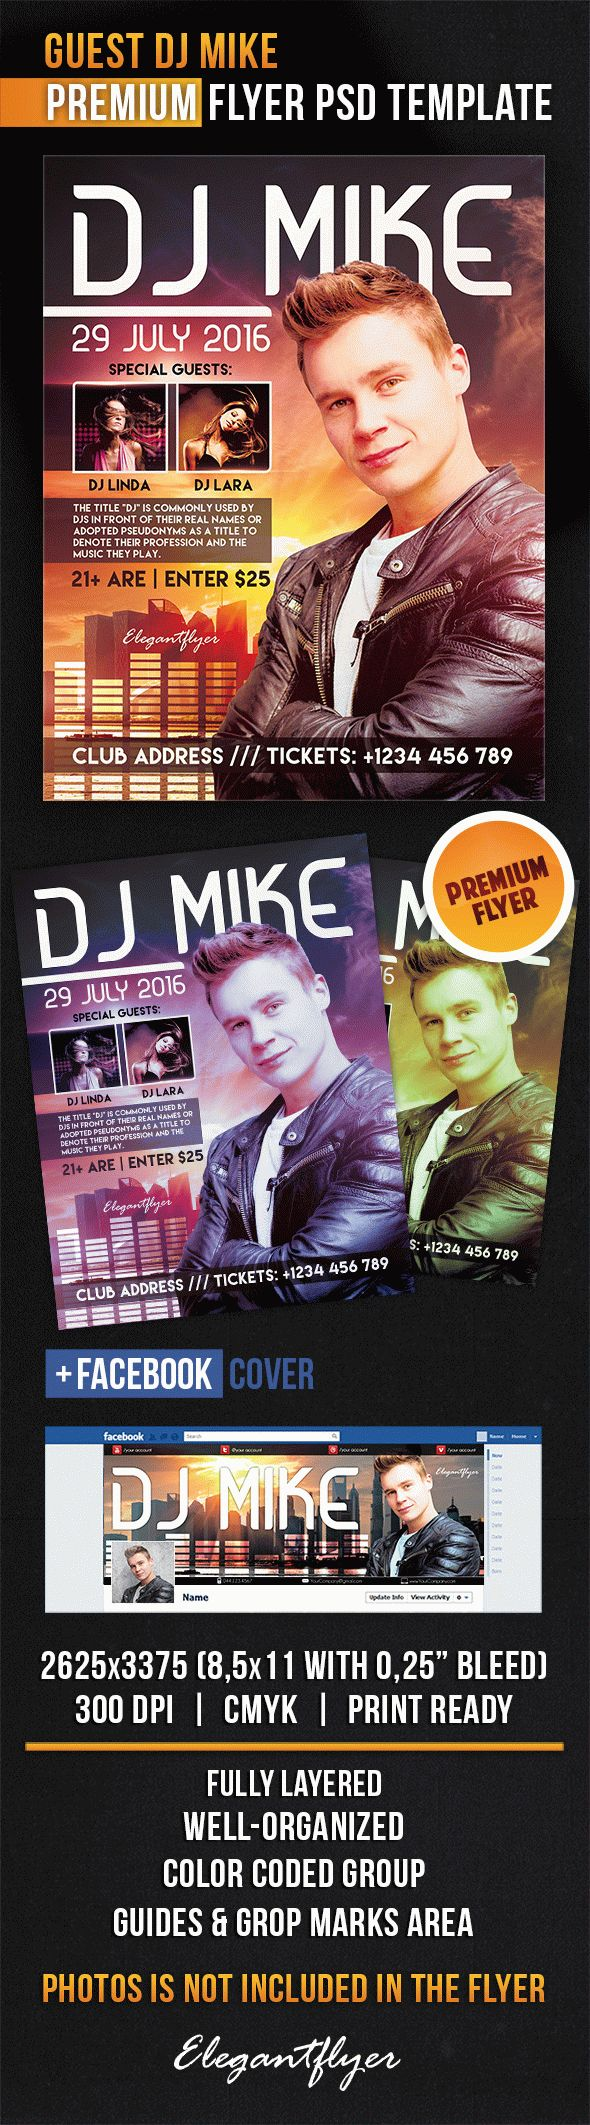 Guest Dj Mike – Flyer PSD Template + Facebook Cover